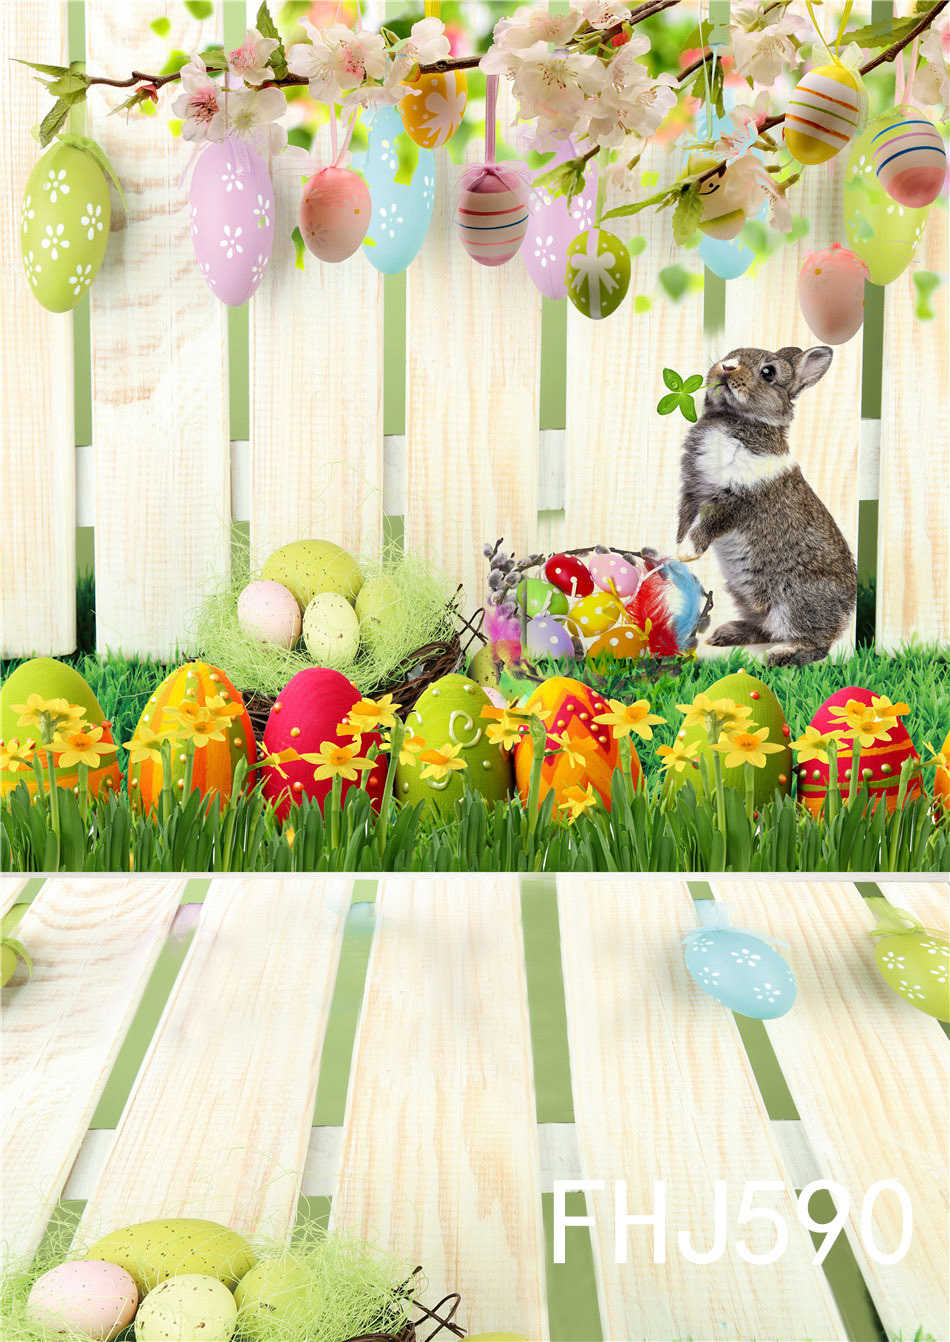 Happy Easter Day Children Colorful Eggs Photography Backdrops Cute Rabbit Wood Floor Decoration Photo Studio Background easter day eggs in straw photography backdrops dry branches fotografia photo background for photo studio photography background